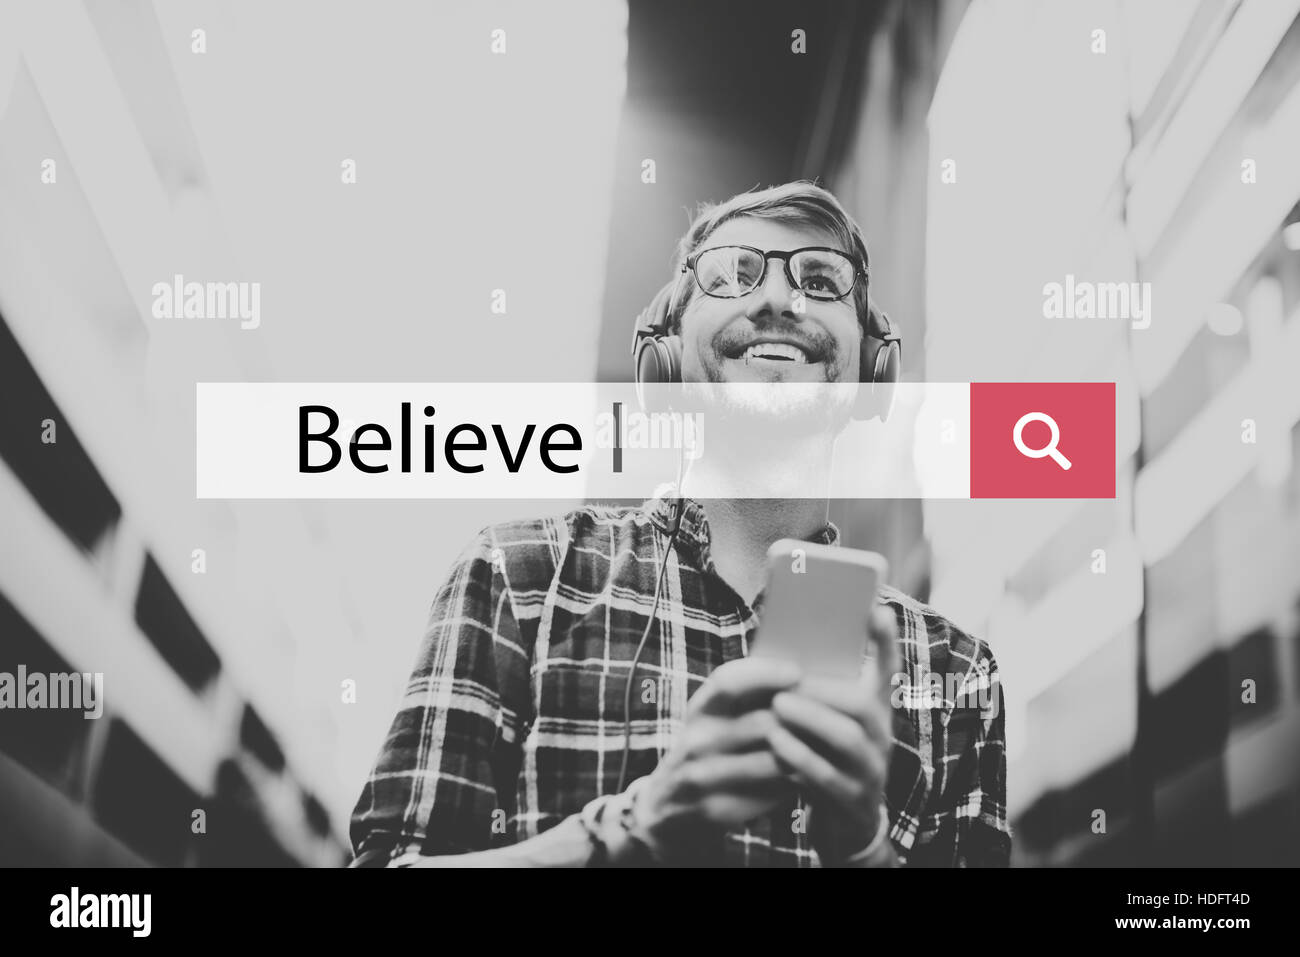 Believe Trust Faith Hope Concept - Stock Image